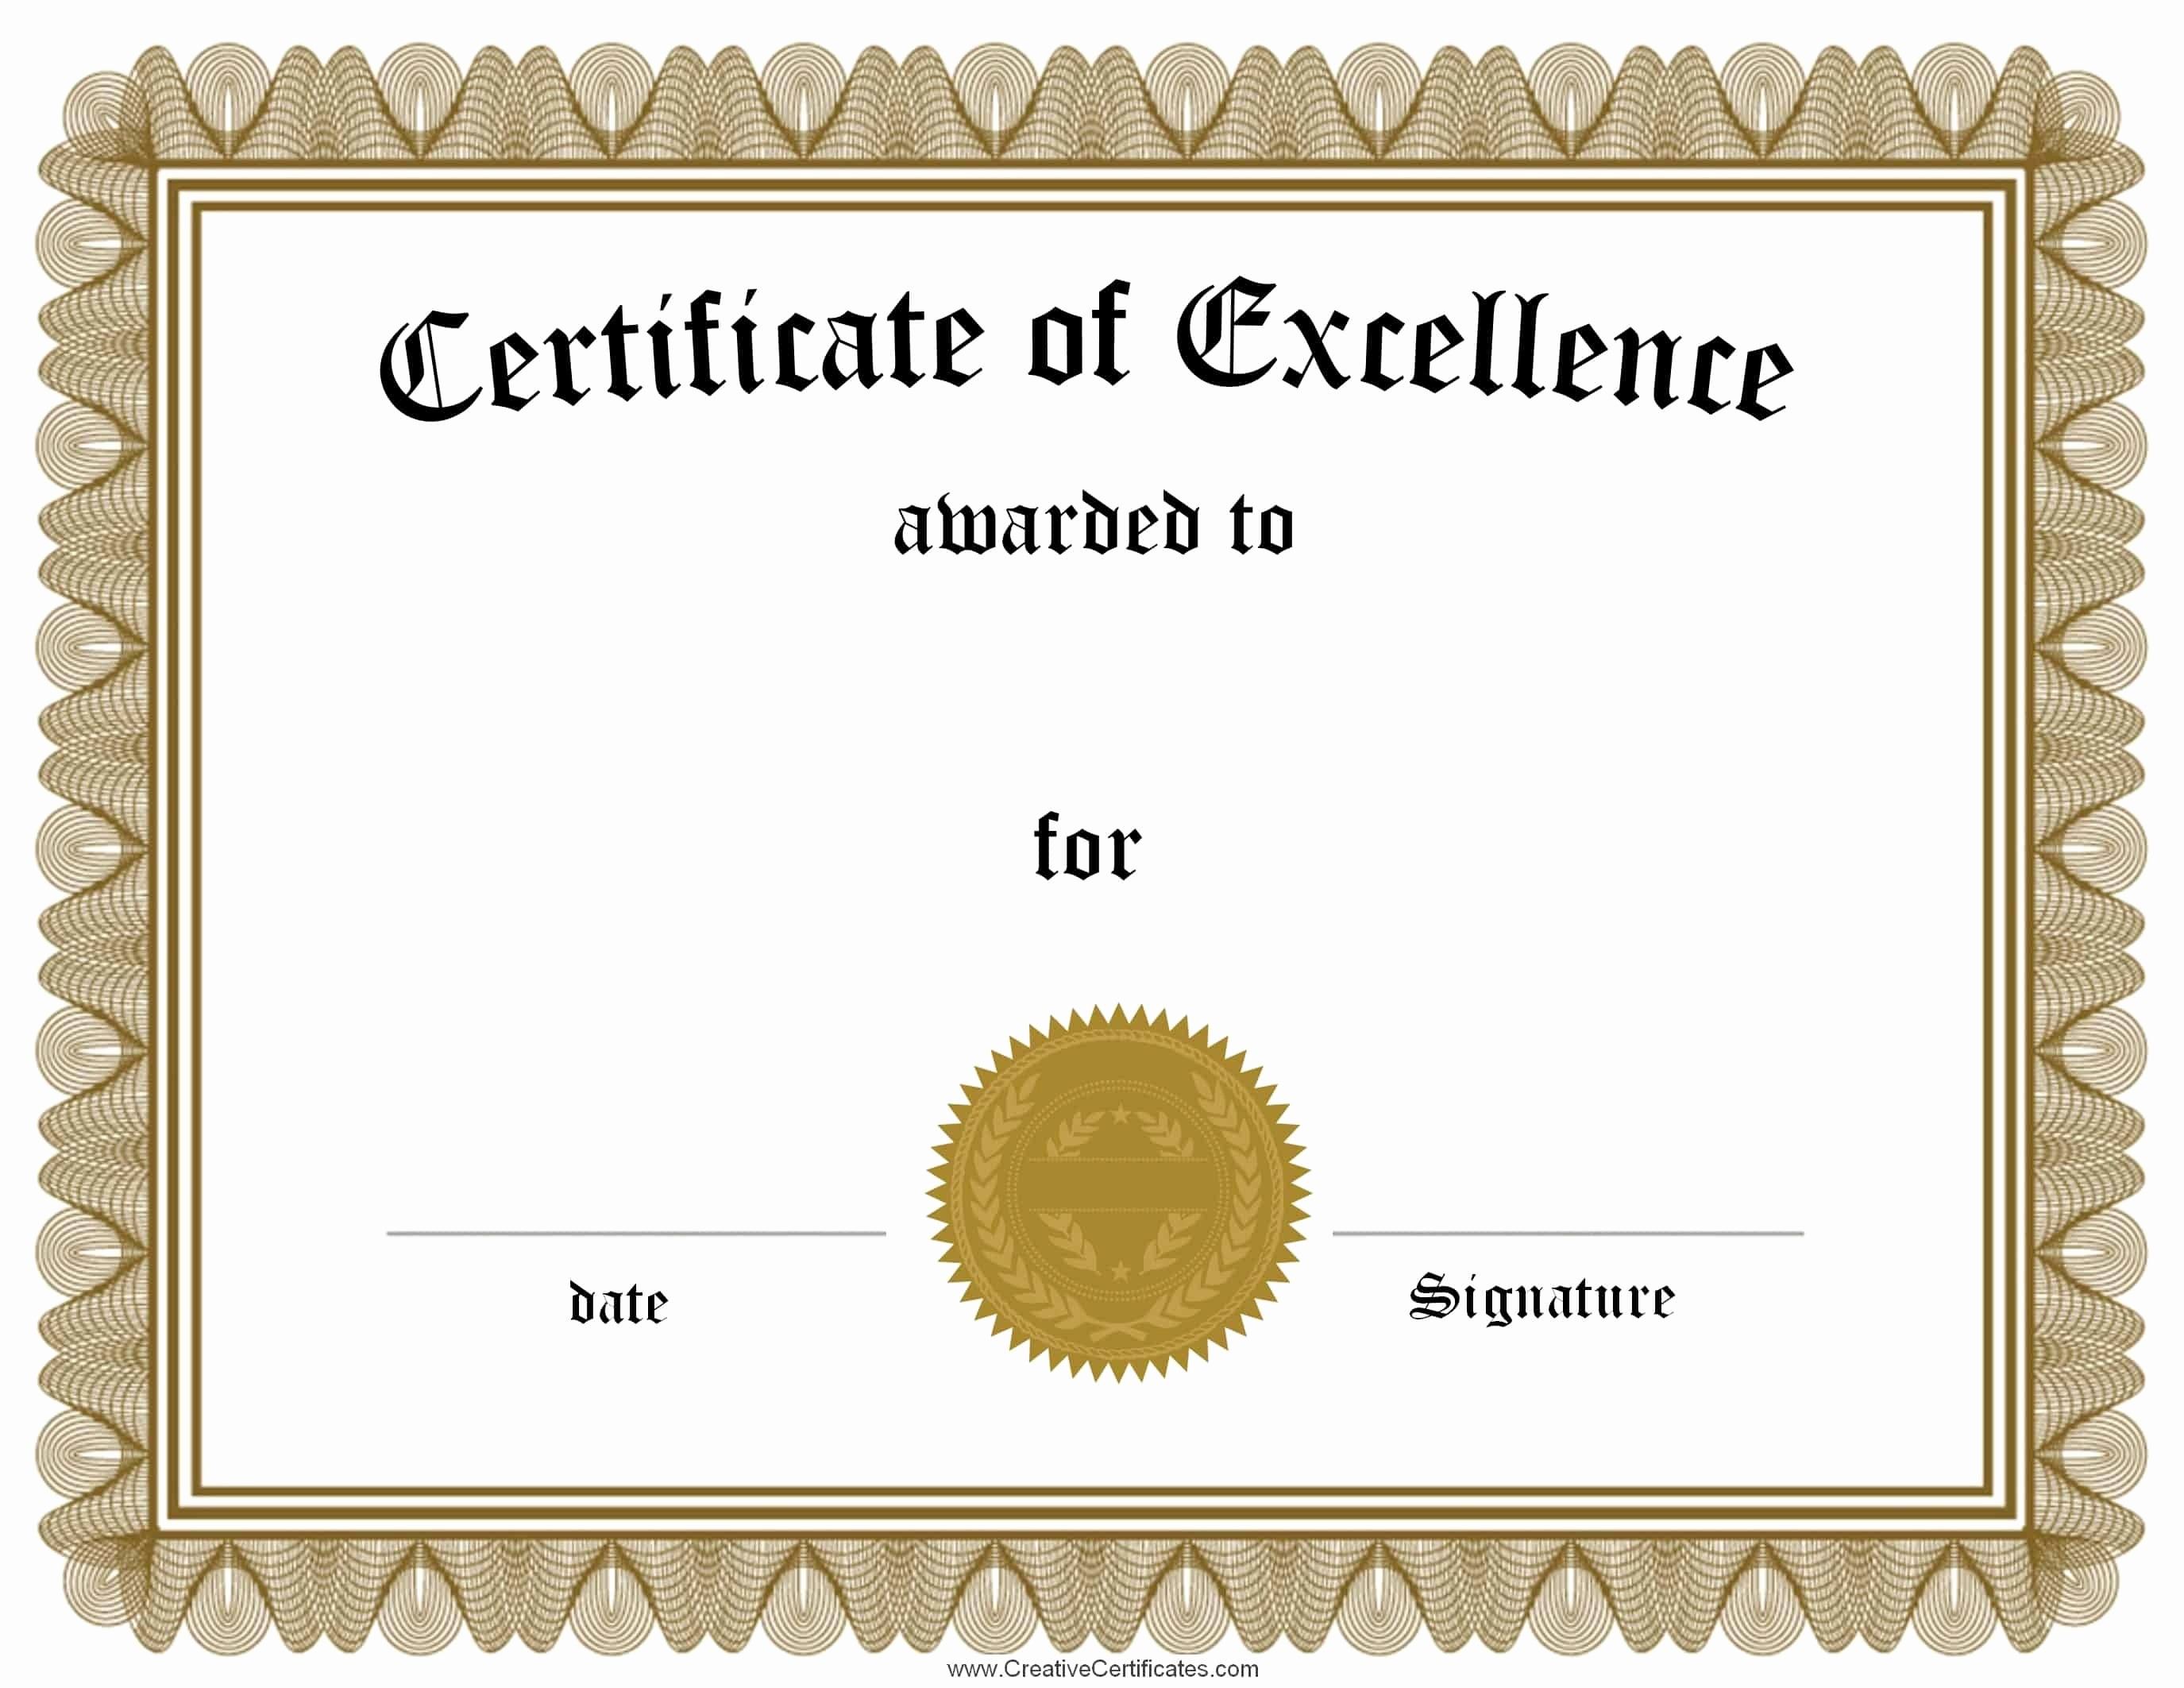 Academic Excellence Award Certificate Template New Free Customizable Certificate Of Achievement